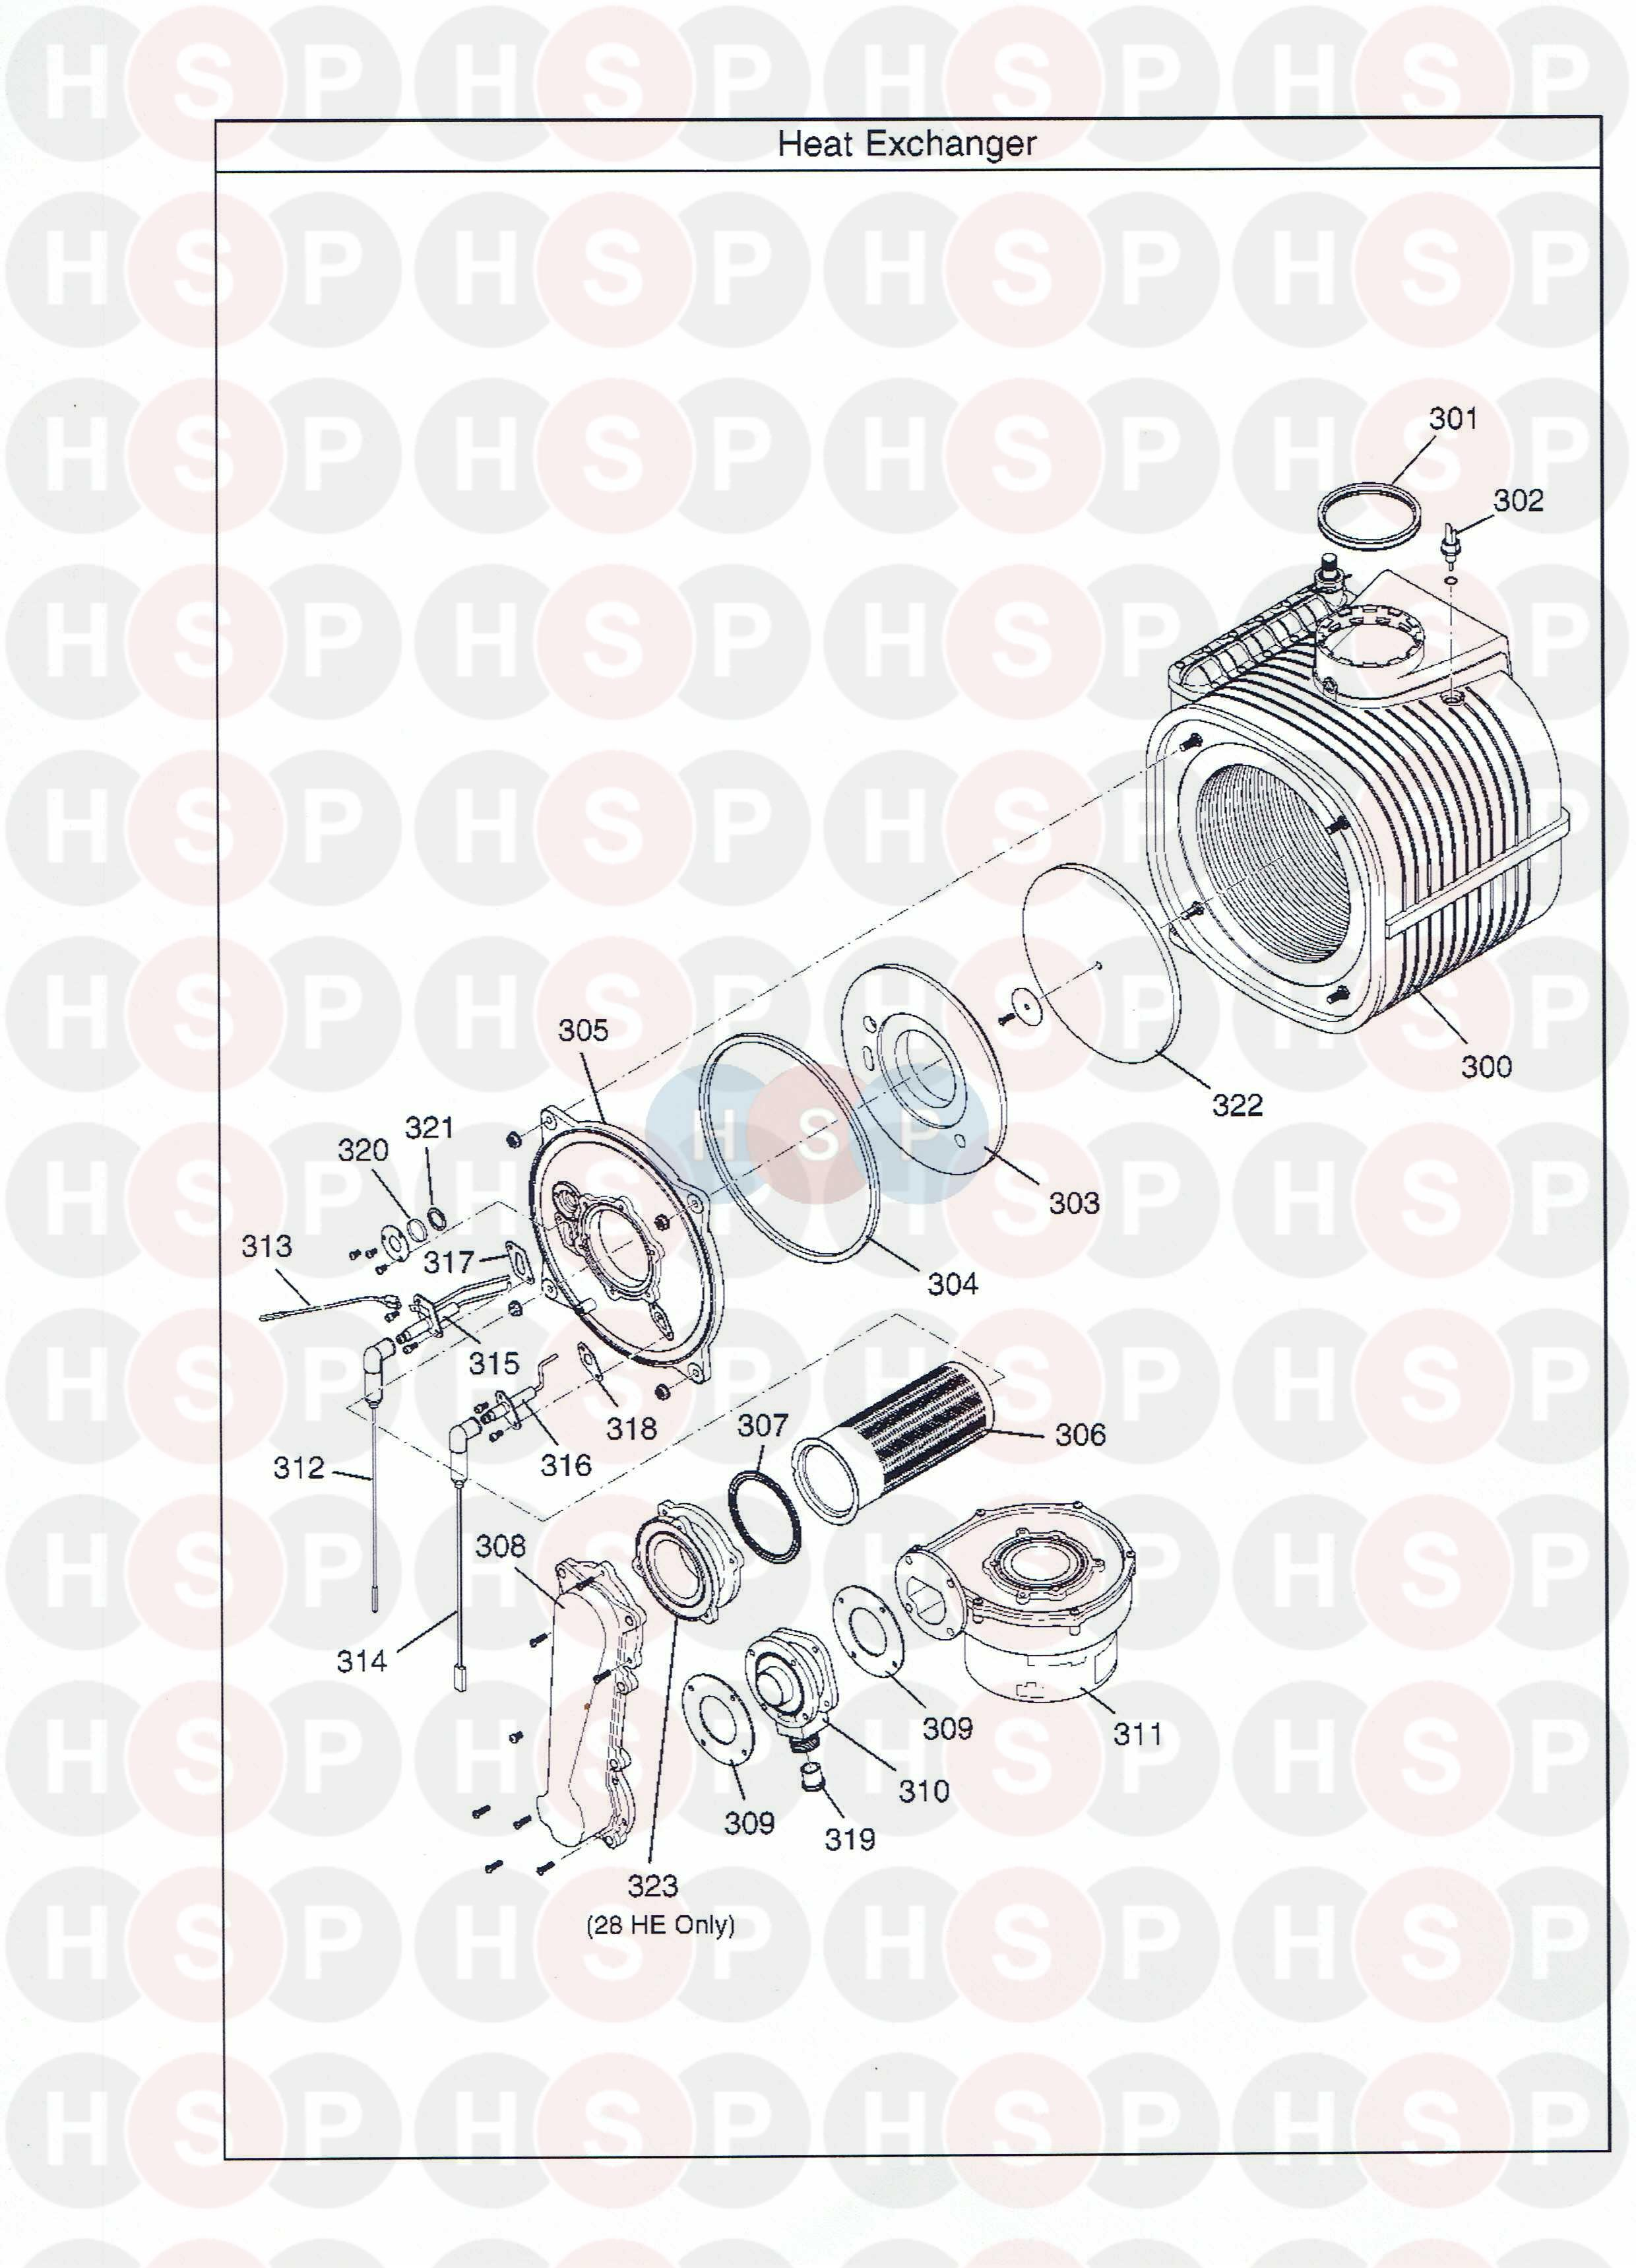 potterton gold 28 he combi  heat exchanger  diagram